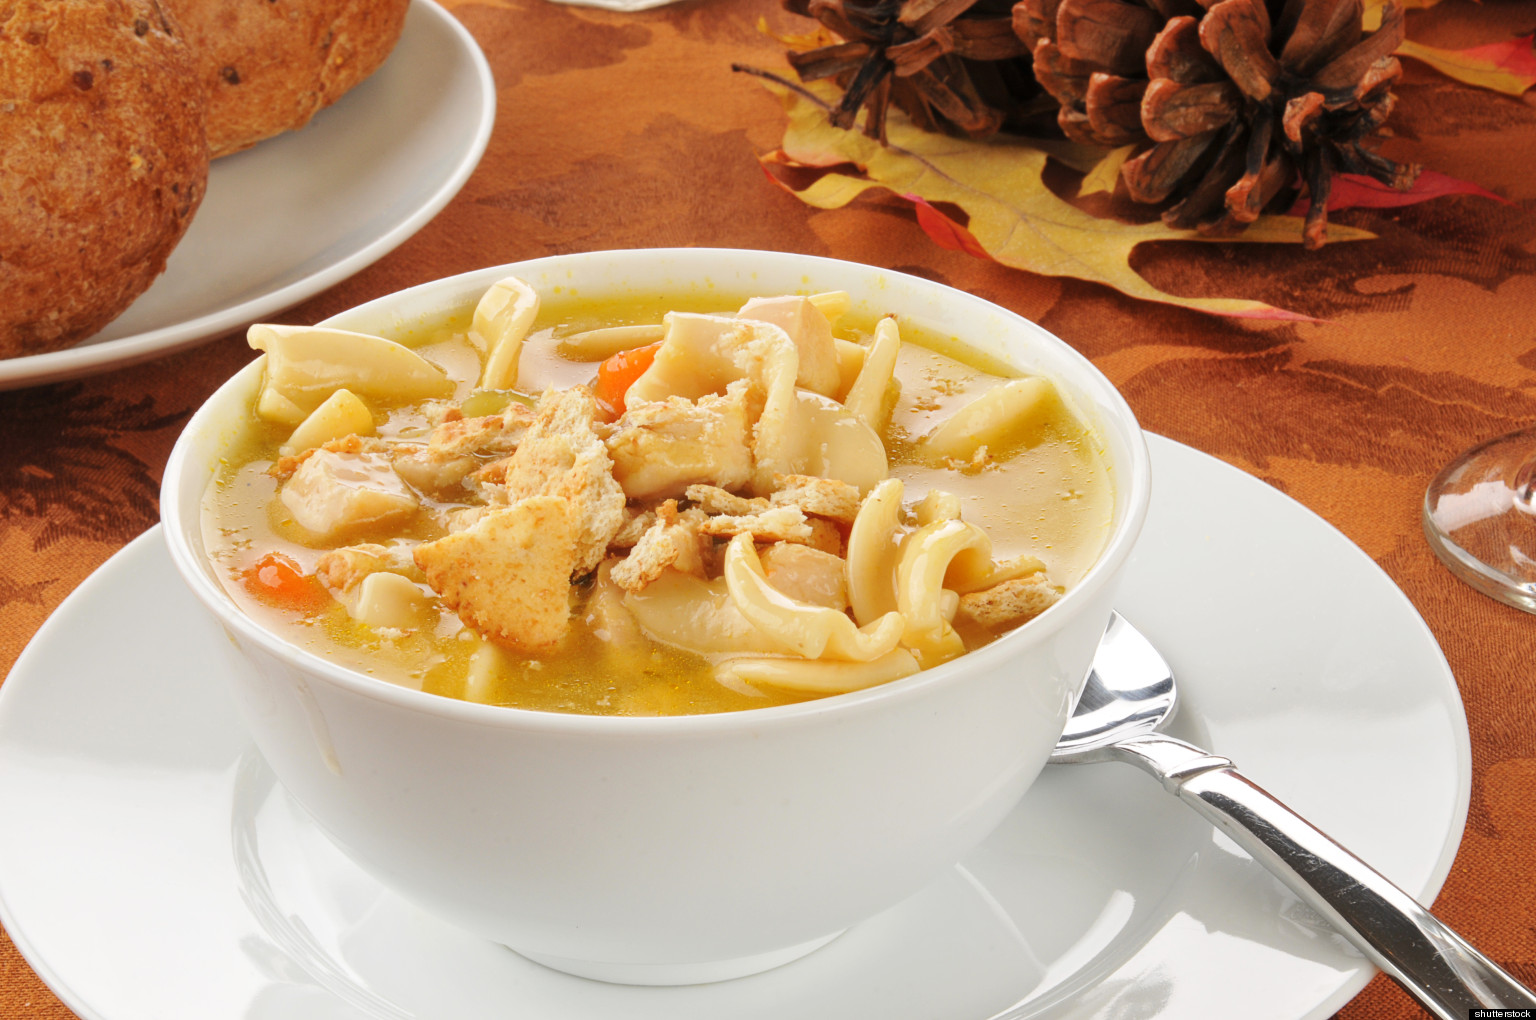 Chicken noodle soup one flu metric we 39 ve never thought of for What vegetables to put in chicken noodle soup